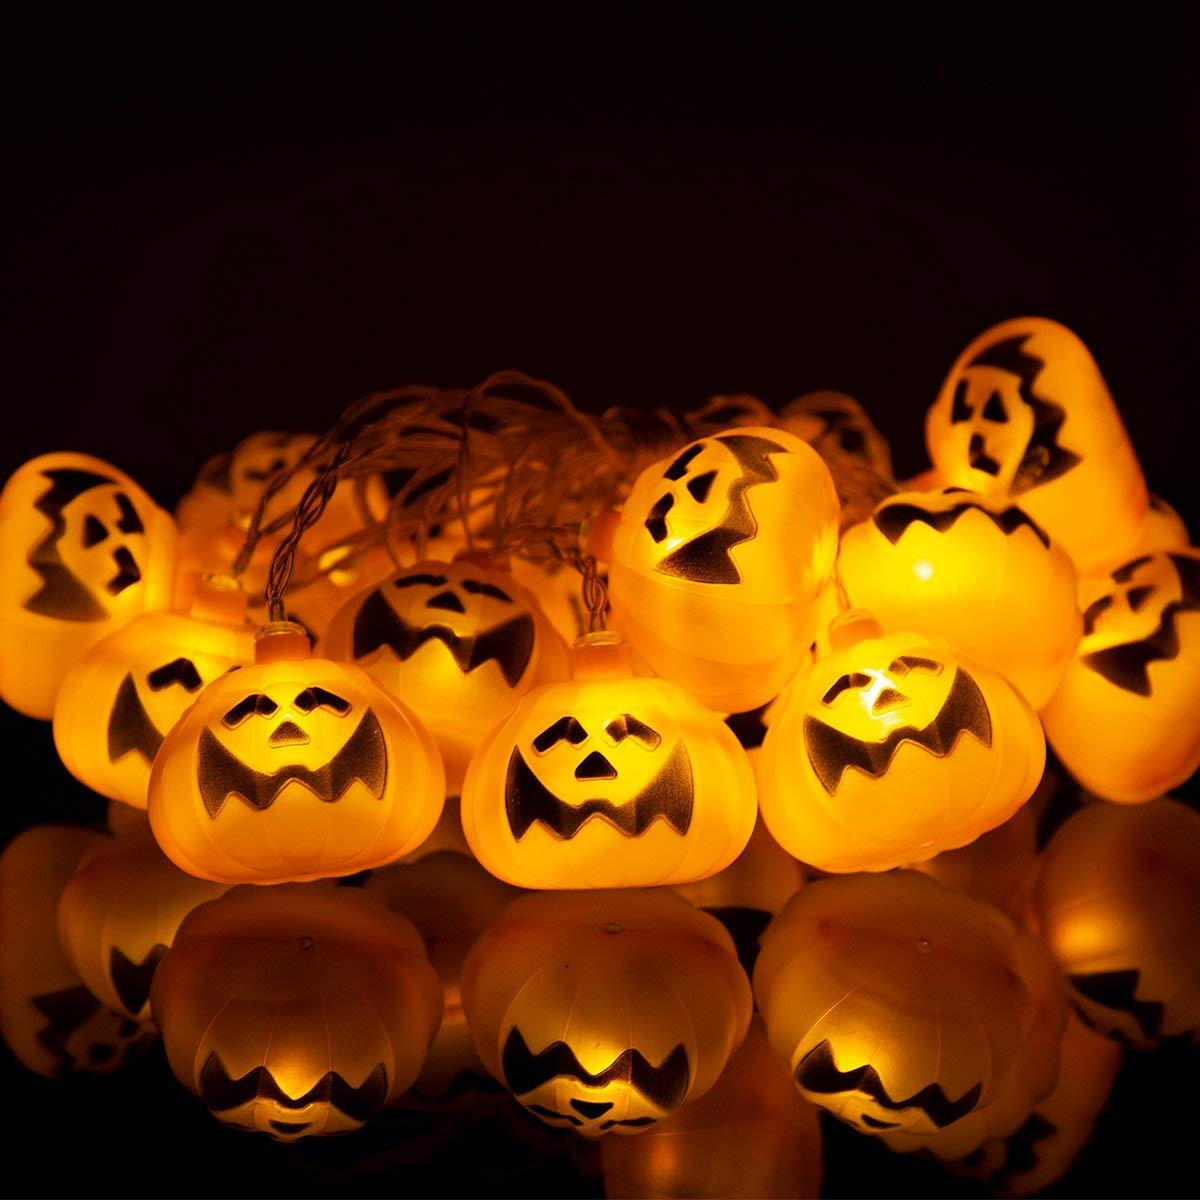 3d Pumpkin Light Led, 20 Led 6.9 Ft Halloween Pumpkin String Light Battery, Halloween Fairy Decoration Light Jack O Lantern, Halloween Garland Holiday Party Hanging Light for Indoor Outdoor Yard-Orang UNEEDE